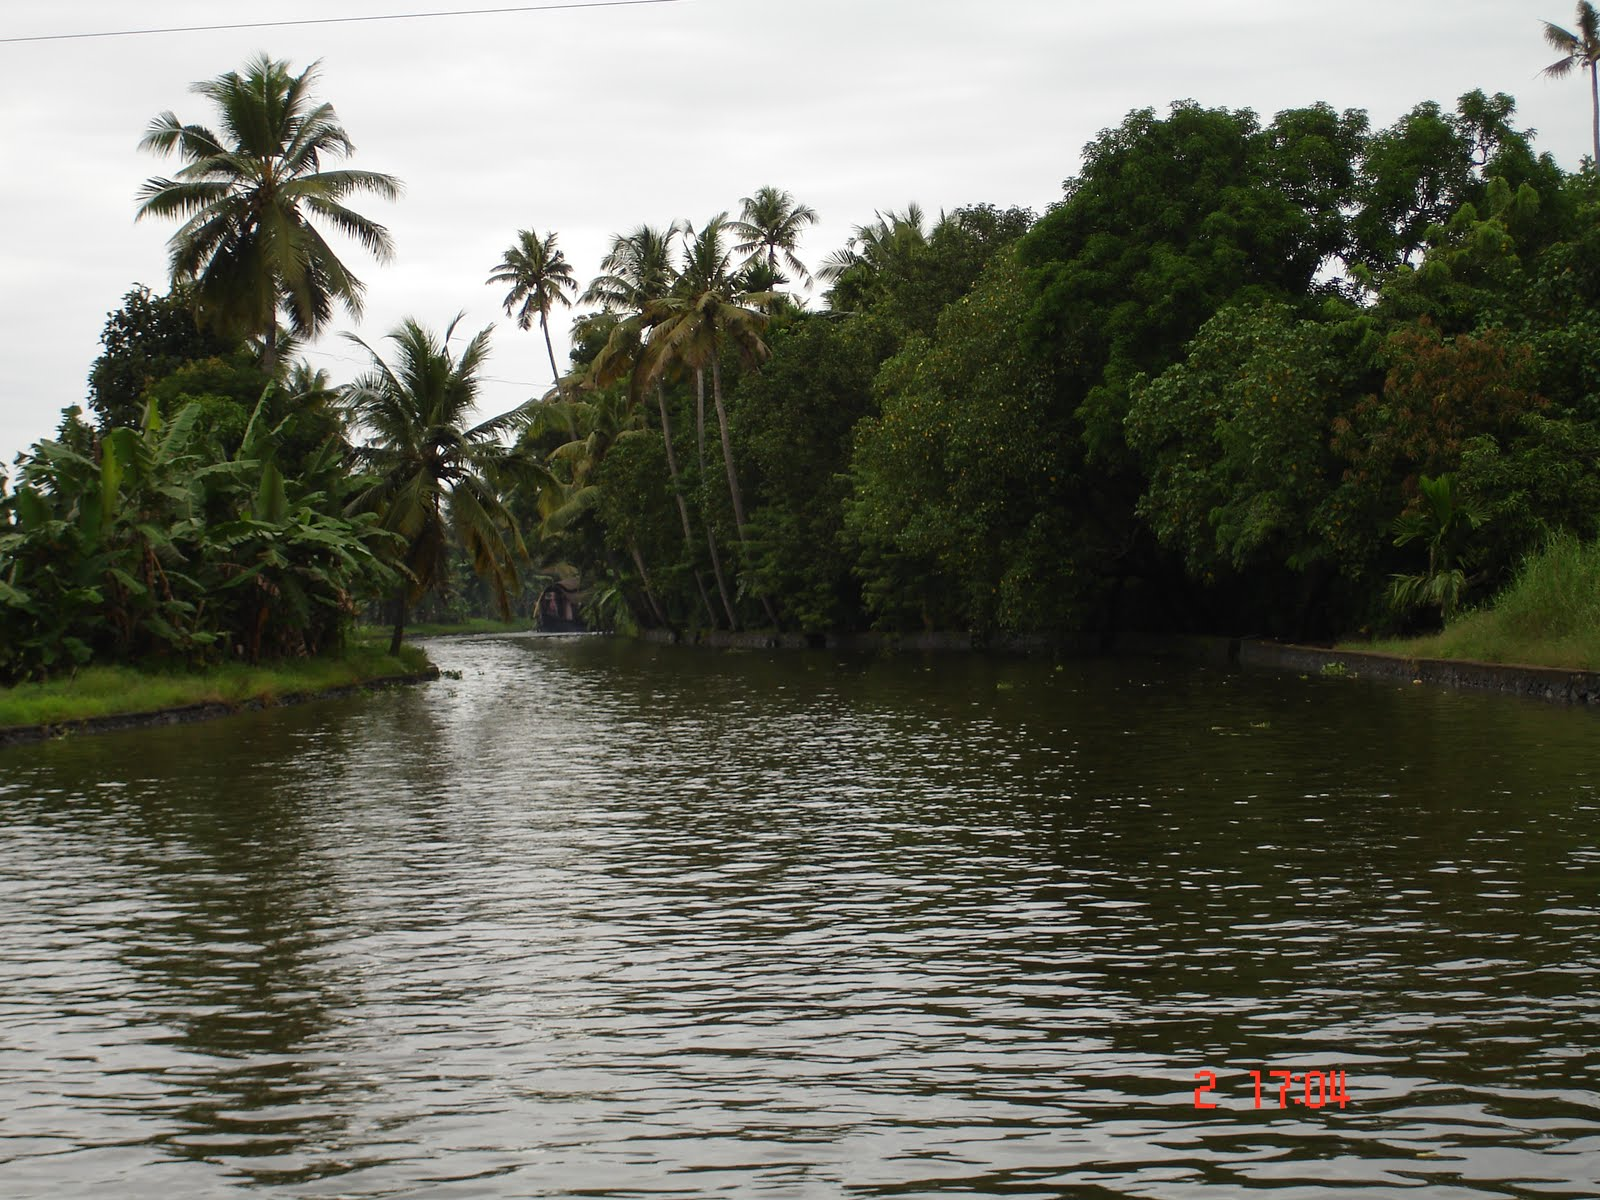 Travel living kerala plan and review allepey house boat for Travel planners kerala reviews